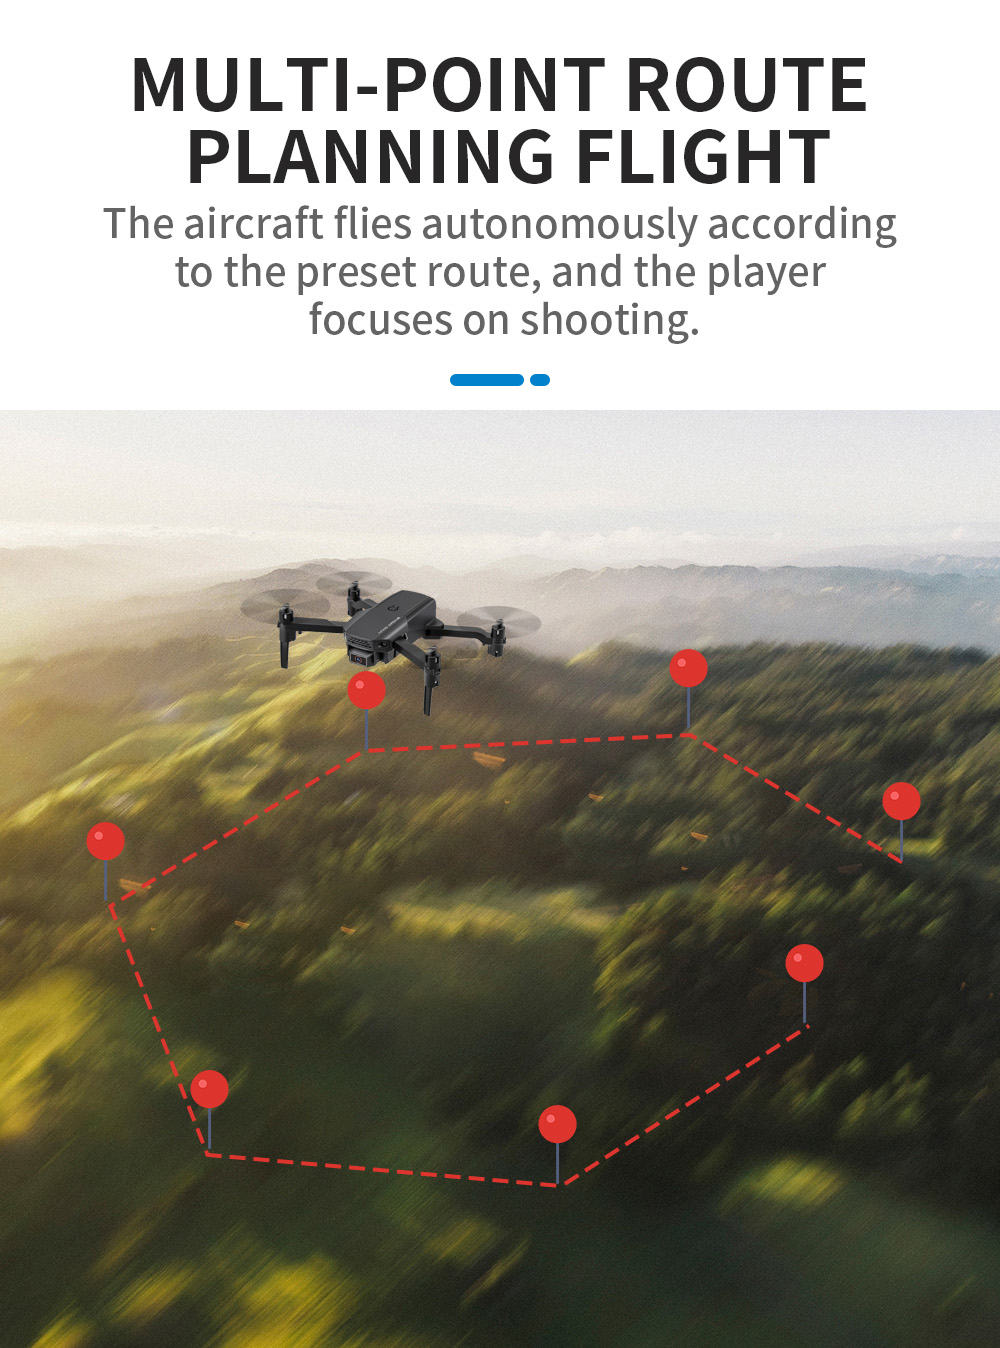 KF611 Mini WiFi FPV with 4K UAV Foldable RC Drone Quadcopter Toy - Black 1 Battery Color Box